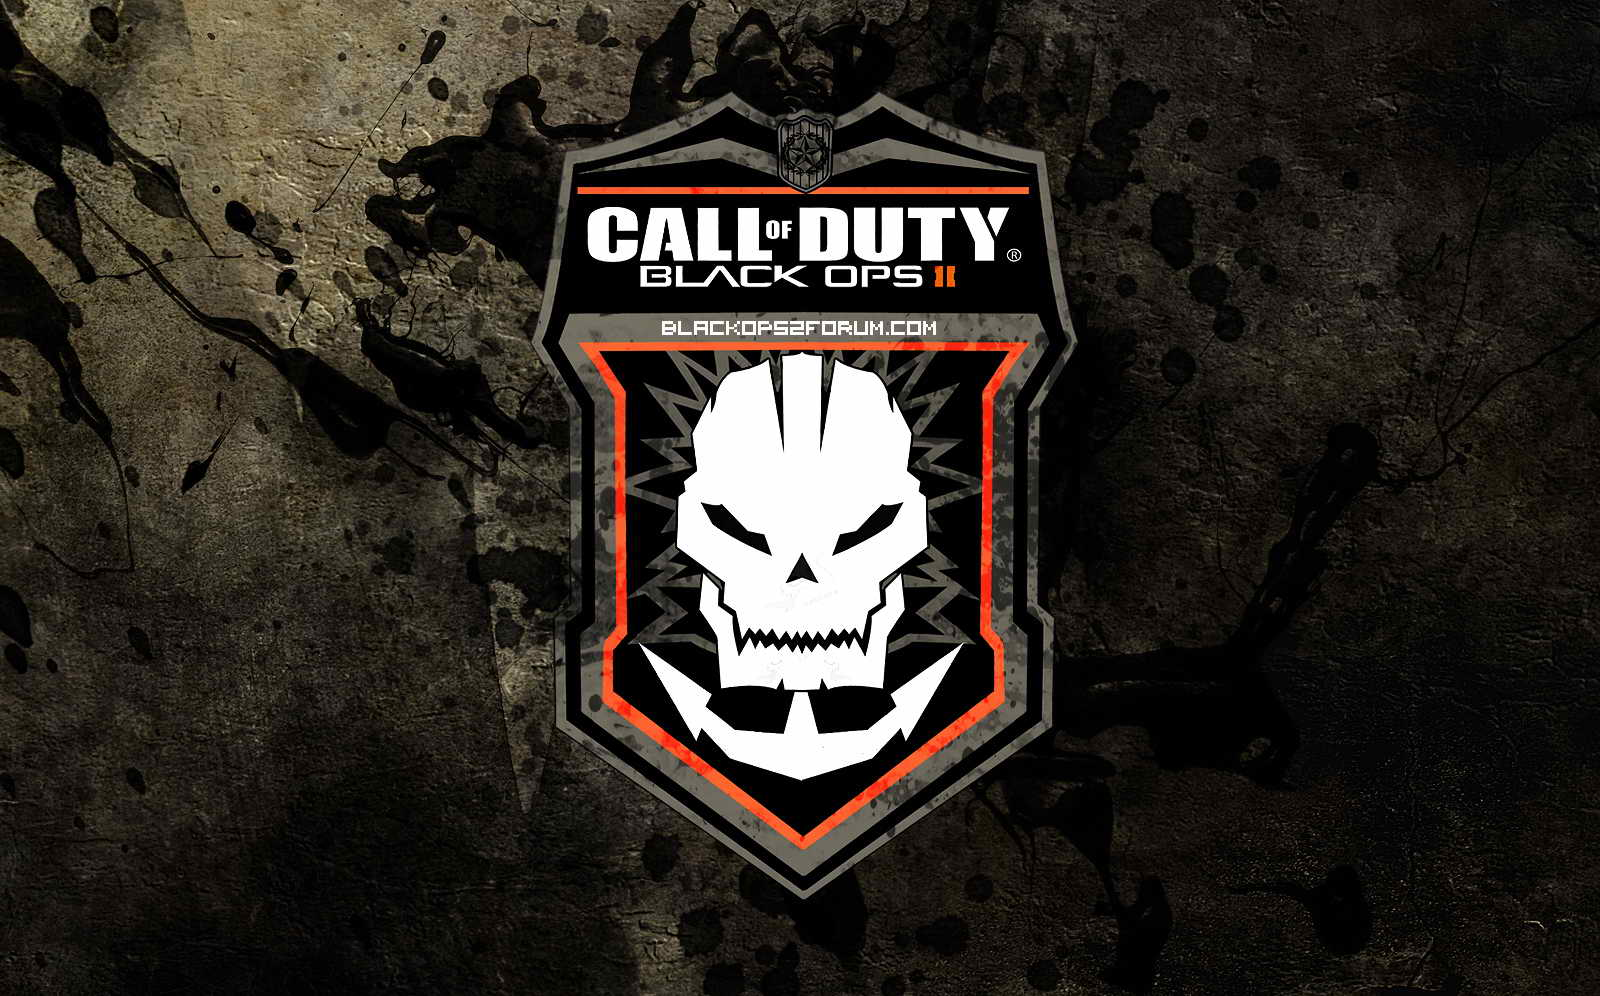 HD WALLPAPERS Call of Duty Black ops 2 HD Wallpapers 1600x996